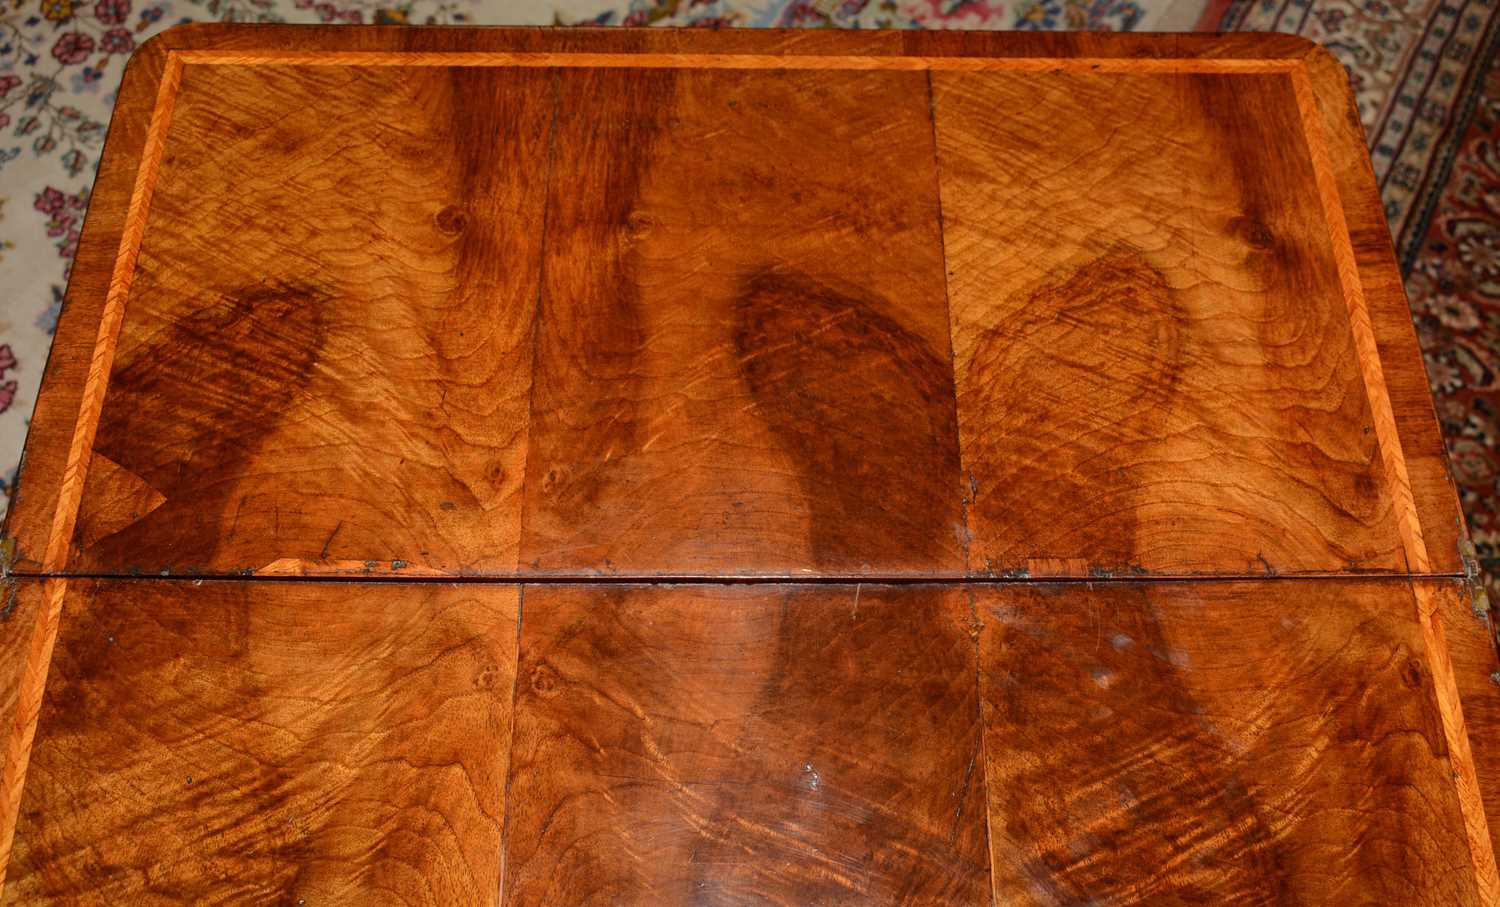 Early 18th Century walnut bachelors chest - Image 15 of 39